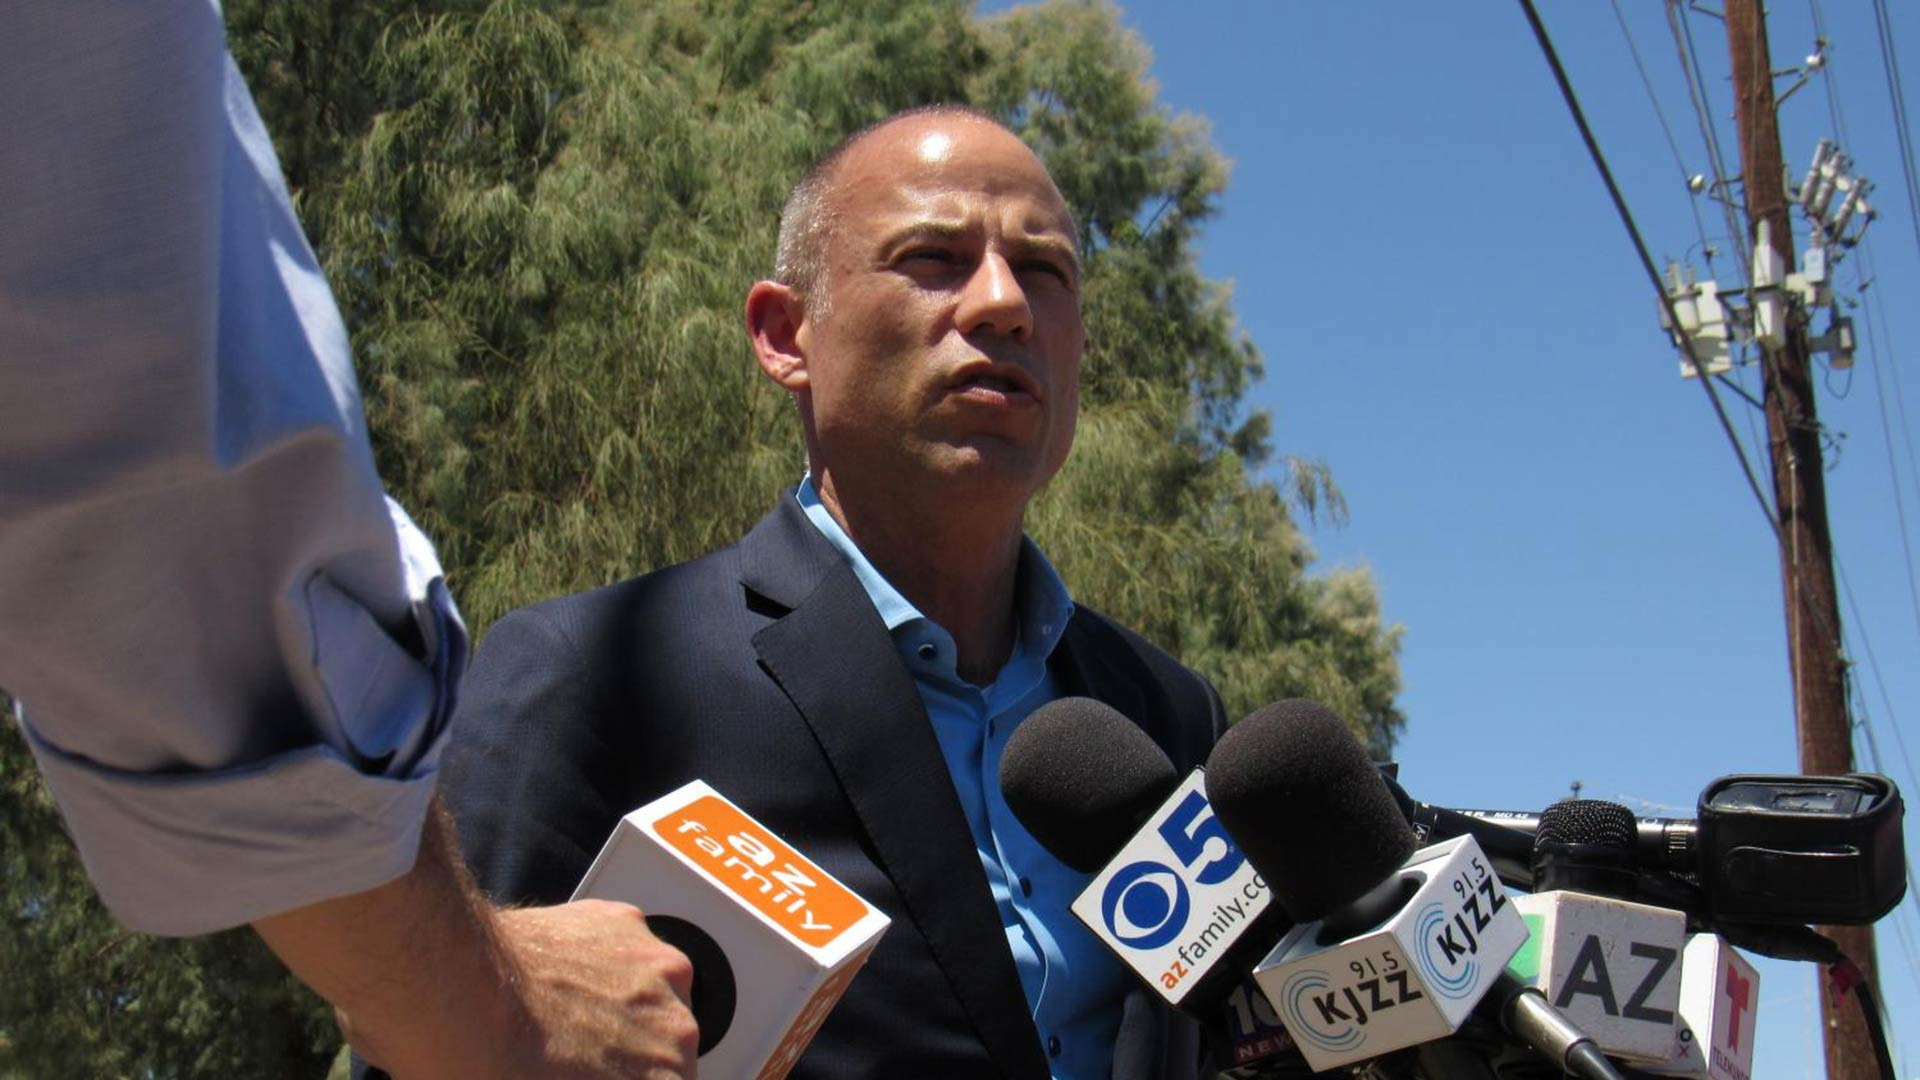 Attorney Michael Avenatti says he now represents upwards of 60 undocumented immigrant families who were separated by the government.